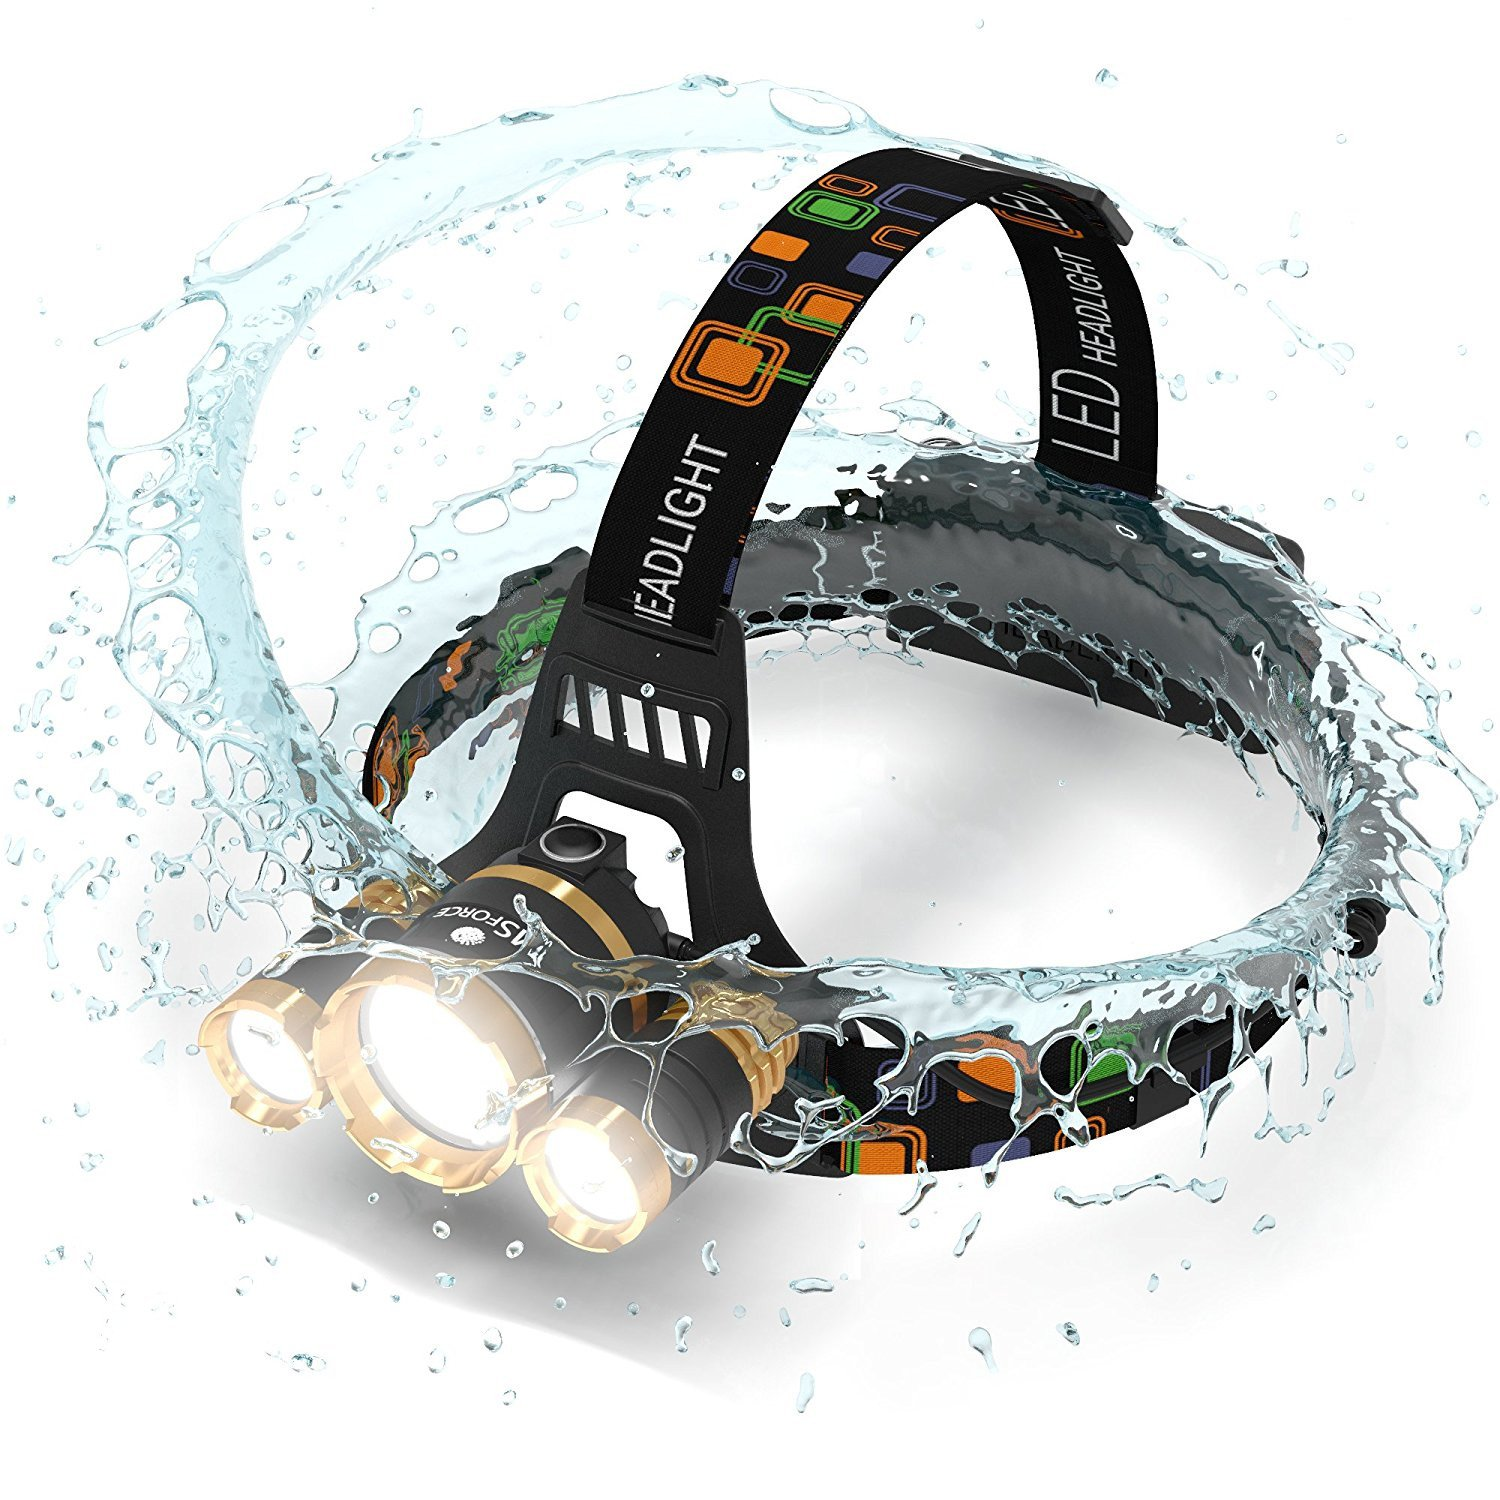 Best LED Headlamp 6000 Lumen flashlight - IMPROVED LED, Rechargeable 18650 headlight flashlights, Waterproof Hard Hat Light, Bright Head Lights, Running or Camping headlamps FOX-HK